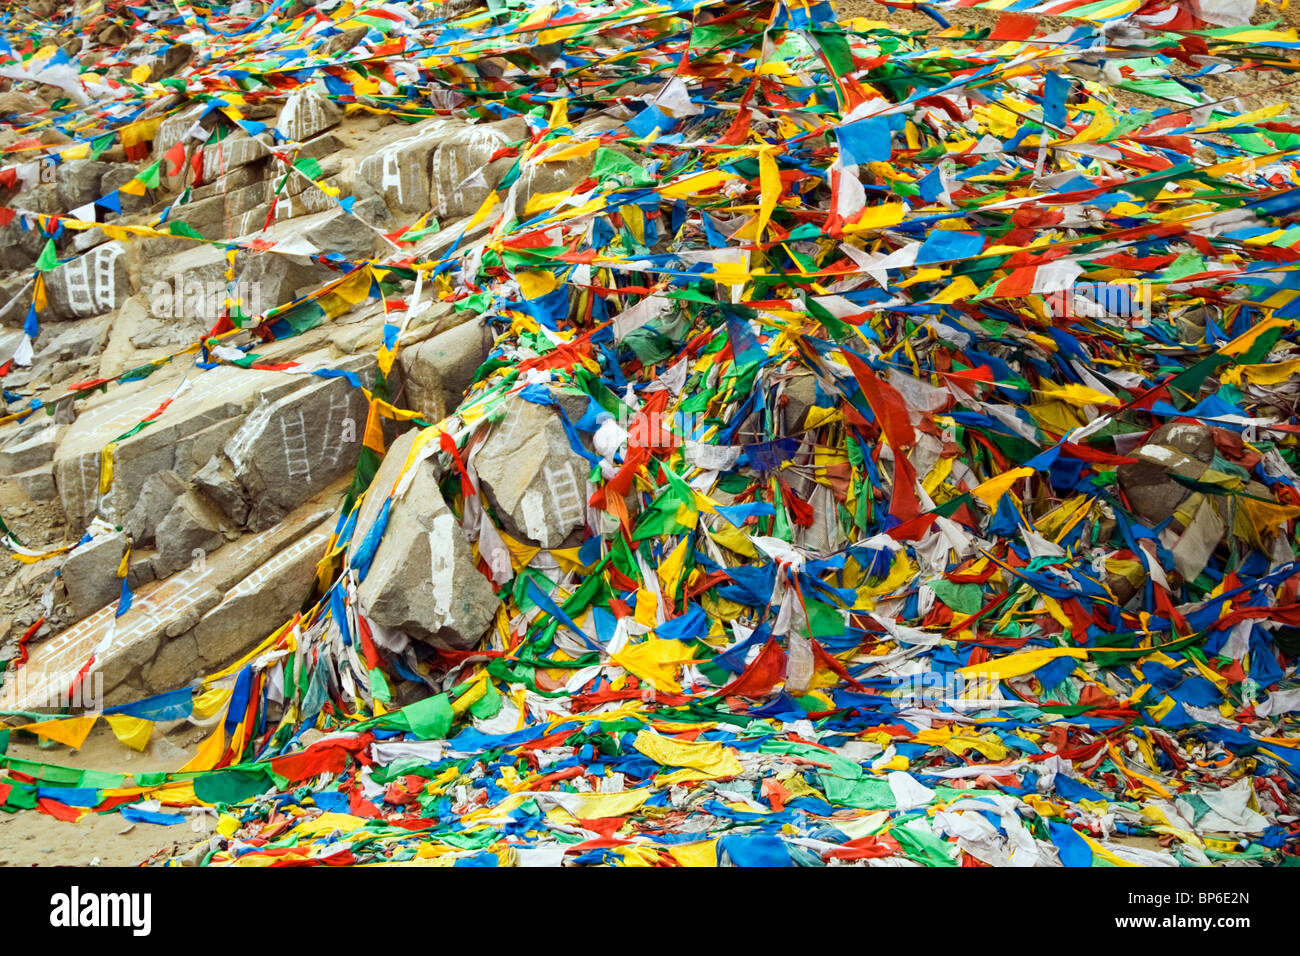 Prayers flags blow against white painted ladders at a Tibetan Burial site - Stock Image